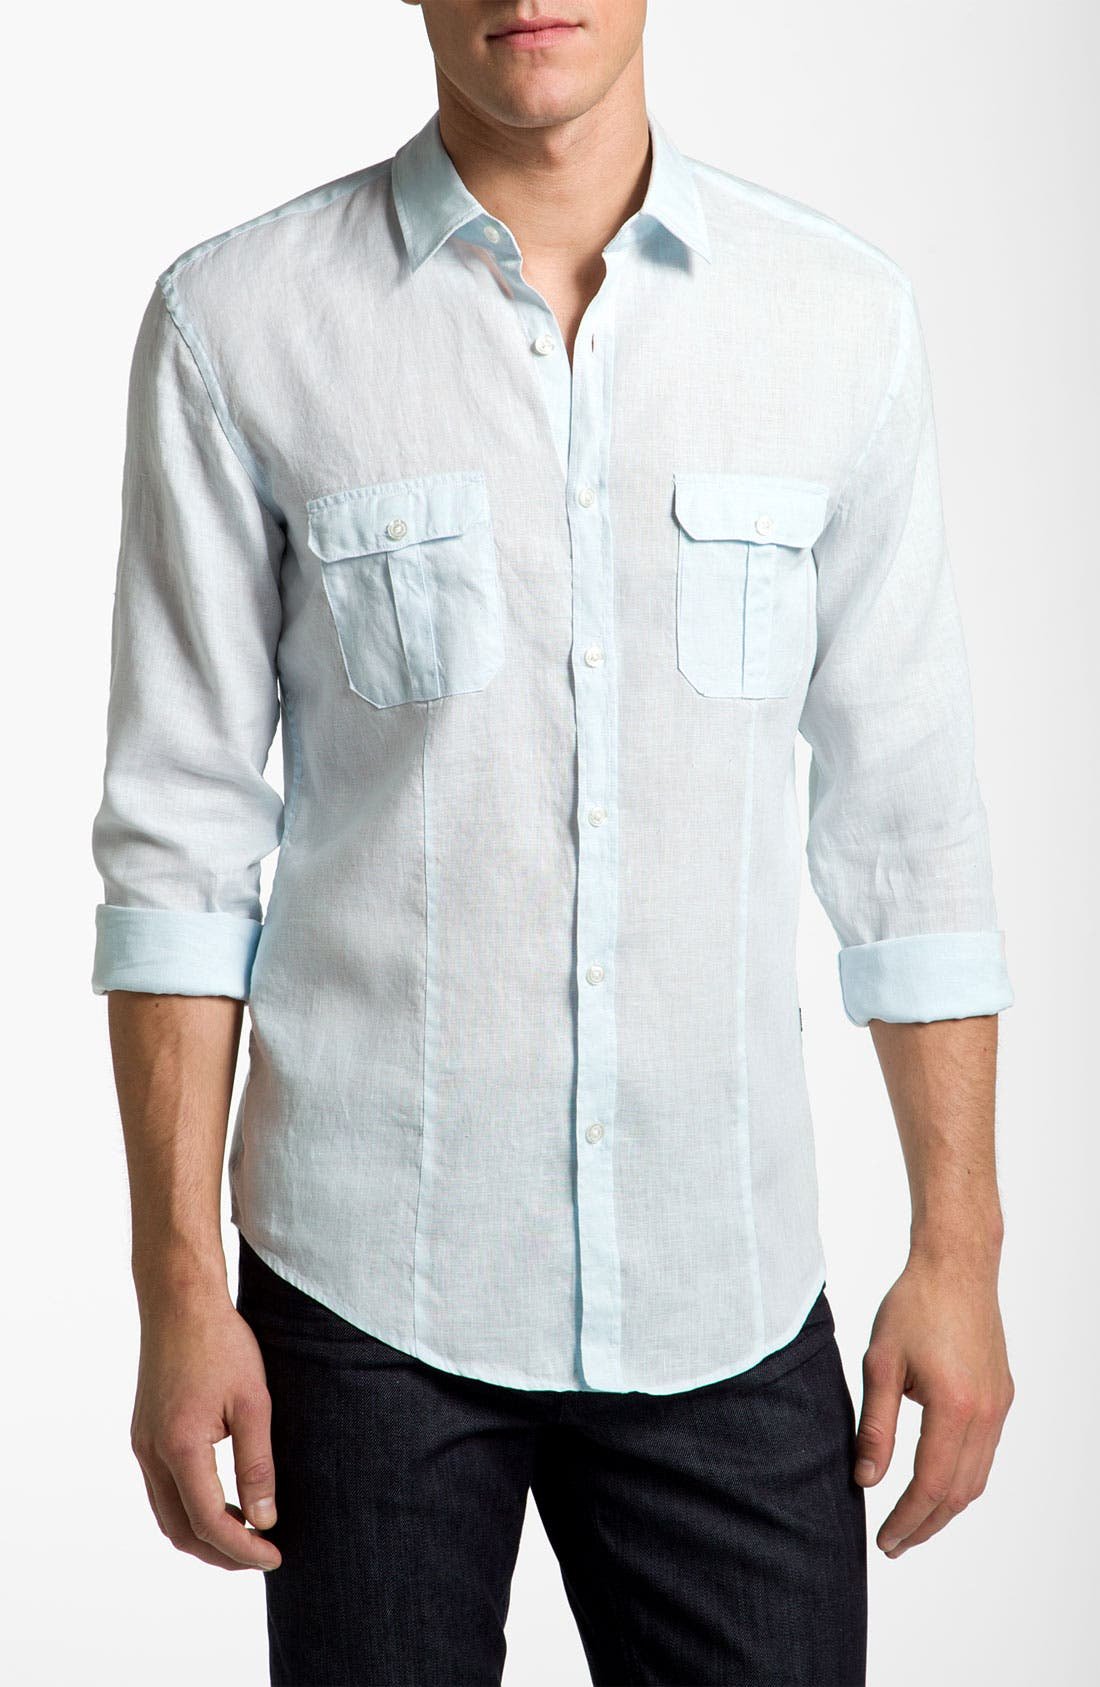 Alternate Image 1 Selected - BOSS Black 'Orsino' Slim Fit Shirt